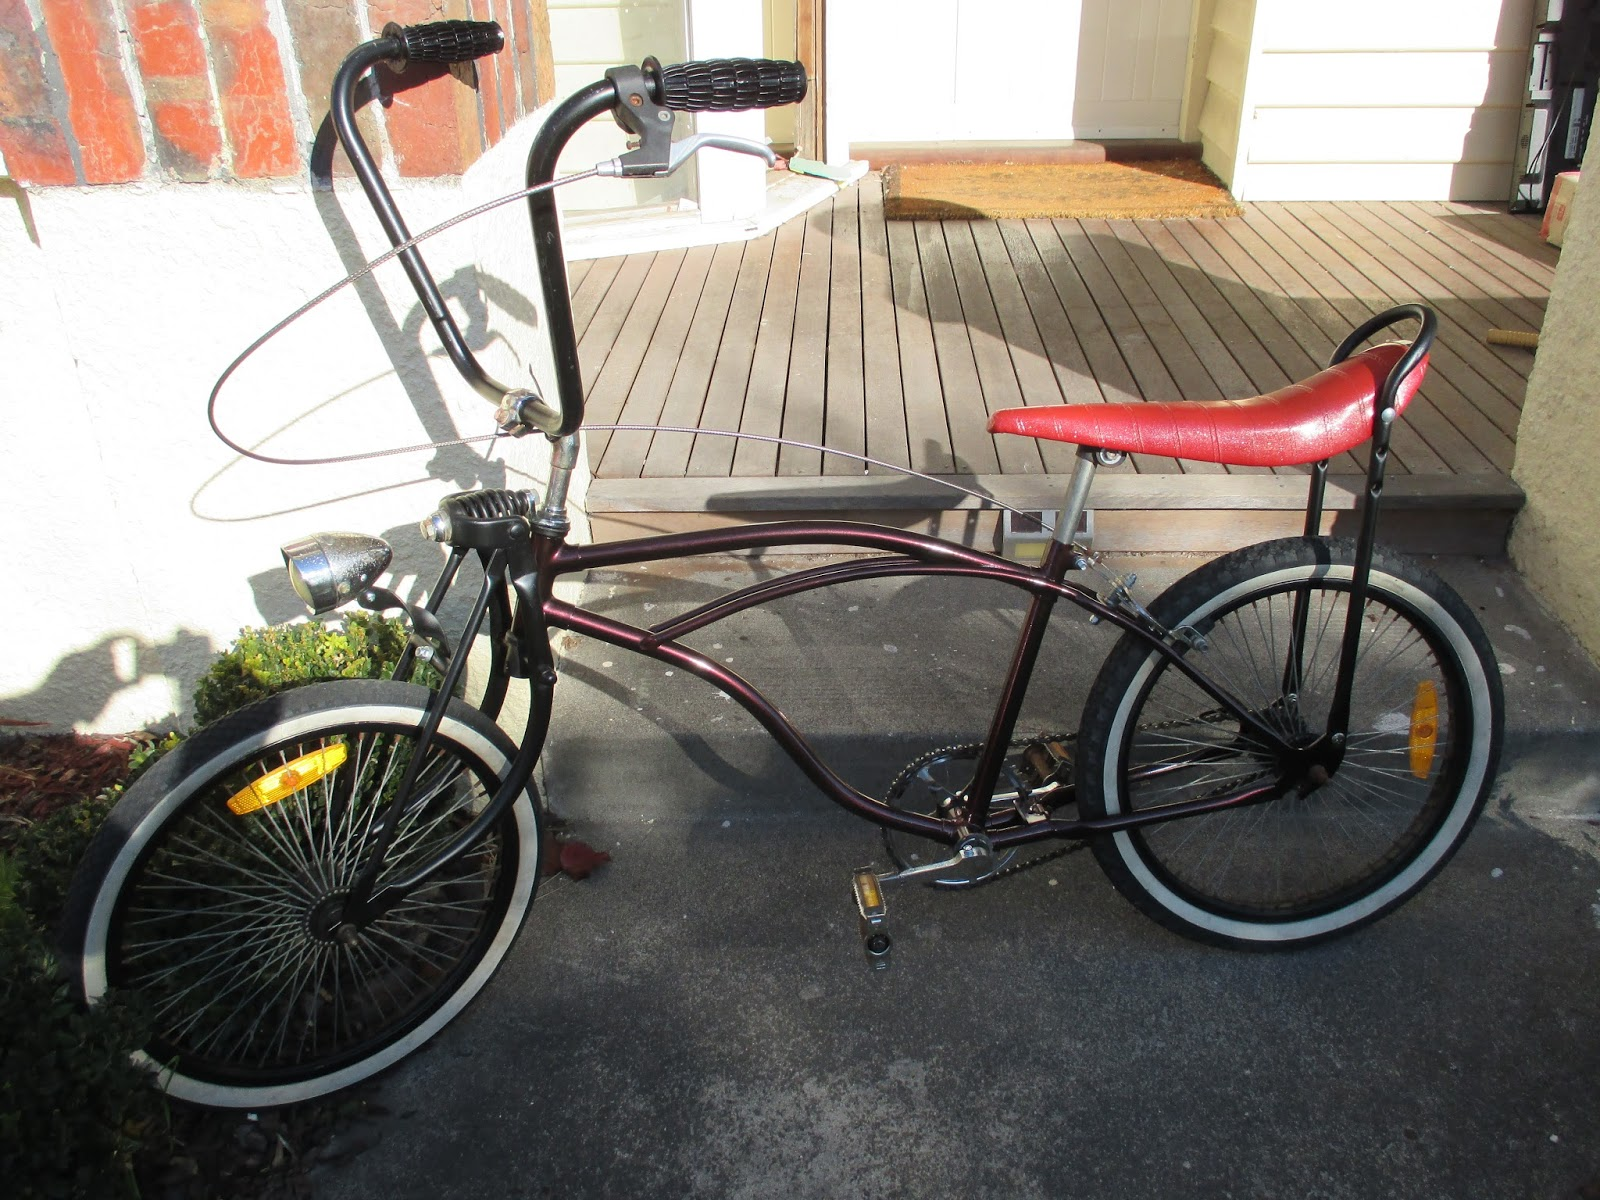 Dragster Lowrider Custom Bike For Sale. Just completed. Rat Rod look ...